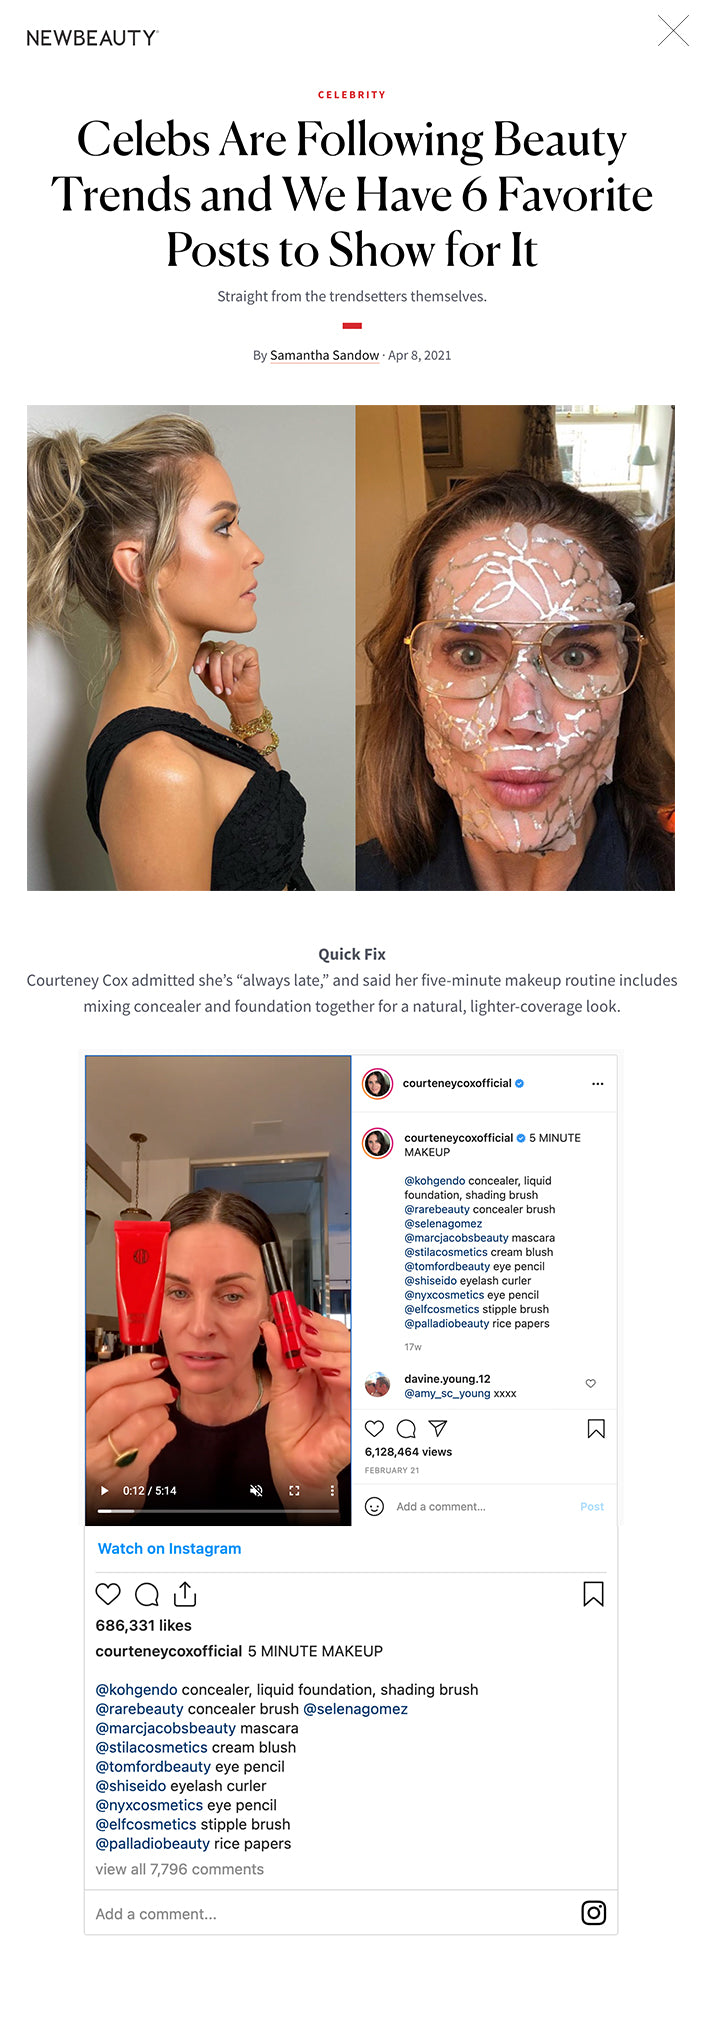 """Celebs Are Following Beauty Trends and We Have 6 Favorite Posts to Show for It Straight from the trendsetters themselves. By Samantha Sandow · Apr 8, 2021 Celebs Are Following Beauty Trends and We Have 6 Favorite Posts to Show for It featured image INSTAGRAM: RIAWNA; INSTAGRAM: BROOKESHIELDS This article first appeared in the Spring 2021 issue of New Beauty. Click here to subscribe As one season rolls into the next, the trends keep changing, and A-listers aren't immune from following the fads.    Strand Swap Prepping their locks for the highly anticipated spring season, Hilary Duff opted for a mermaid-blue hue using pregnancy-safe dye, while Kristin Cavallari rocked a chic, yet simple face-framing pony courtesy of celebrity stylist Riawna Capri.   Advertisement  Launch Pad Jada Pinkett Smith announced the launch of her sustainable and vegan personal-care line, Hey Humans, a current Target exclusive. Our favorite part? Everything in the line is less than $6.   Wellness Queen Brooke Shields has been doing much more than applying face masks during quarantine. As she exclusively told us, her routine also consists of celery juice and defending her beauty products from her daughters.  It's Personal At NewBeauty, we get the most trusted information from the beauty authority delivered right to your inbox   Advertisement  Cup Holder Busy Philipps shared a post-cupping picture from her bathroom. The ancient Chinese therapy is one of her favorite wellness solutions for when things are feeling out of whack.   Quick Fix Courteney Cox admitted she's """"always late,"""" and said her five-minute makeup routine includes mixing concealer and foundation together for a natural, lighter-coverage look.   Advertisement FIND A DOCTOR Find a NewBeauty """"Top Beauty Doctor"""" Near you  Select a state State Select a state Specialty Select a state Treatment SEARCH CELEBRITY NEW BEAUTY Facebook Email Twitter READ MORE  ANTI-AGING The $12 Concealer and A"""